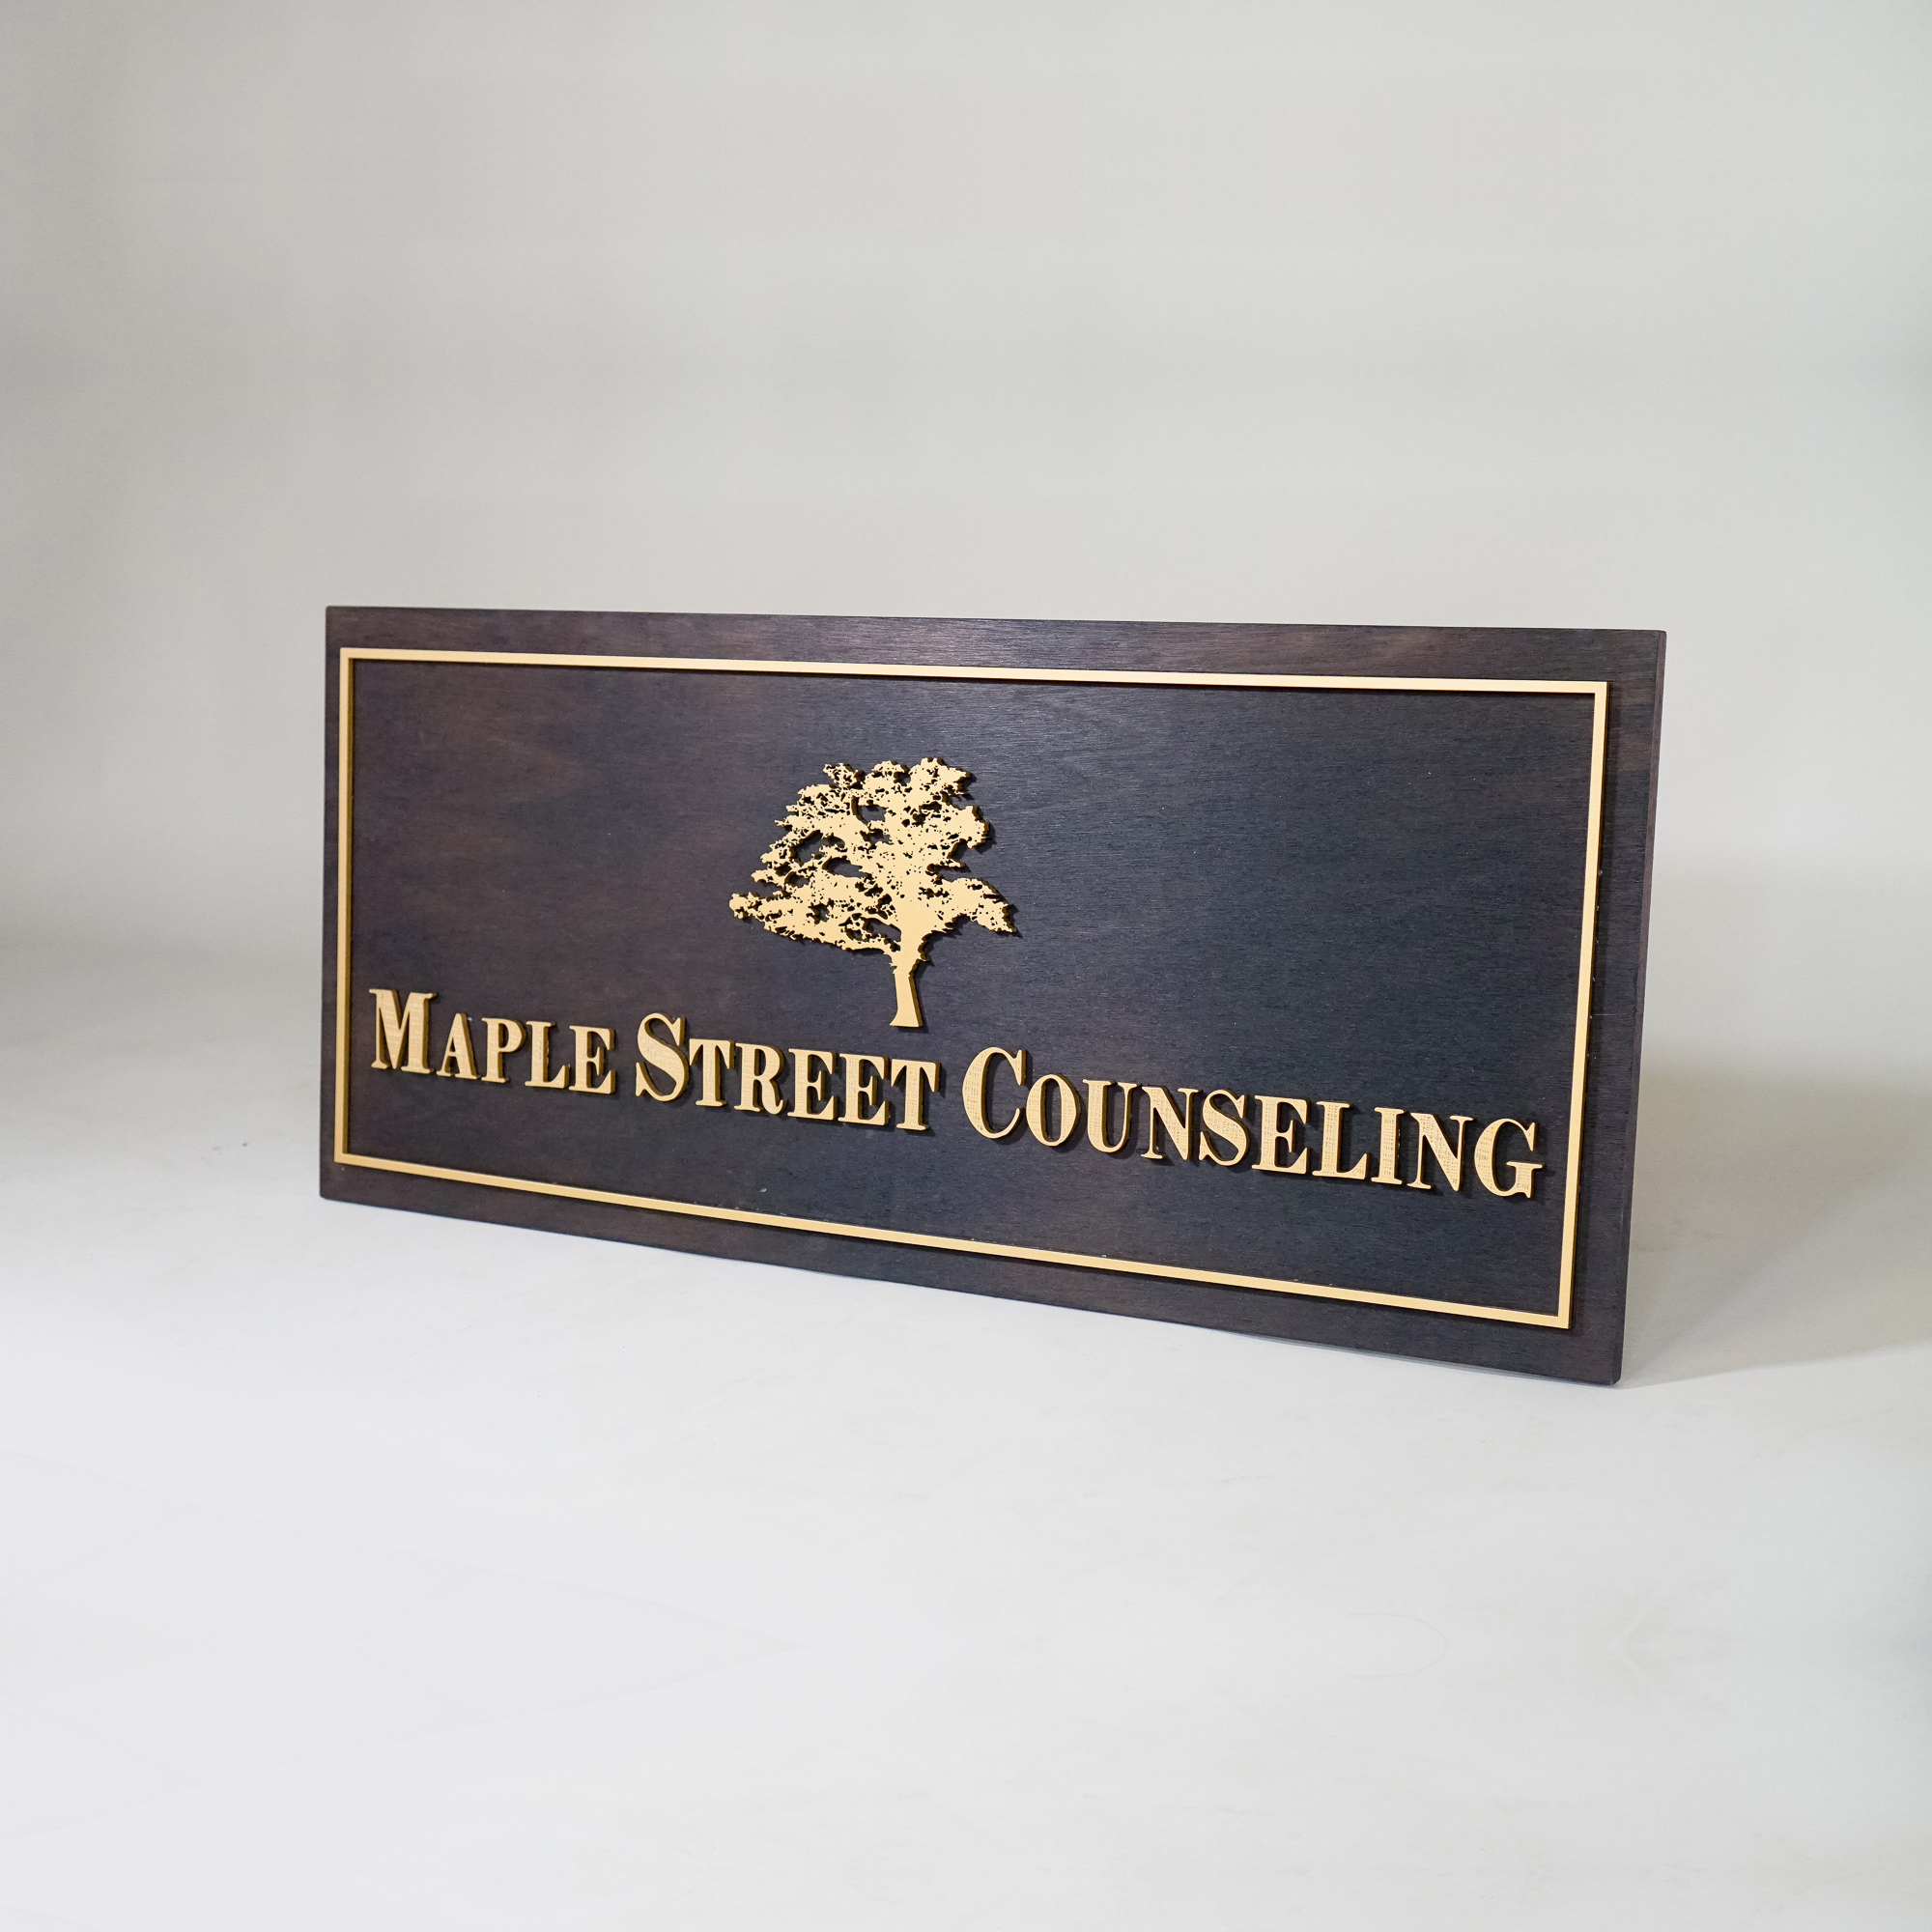 Maple Street Counseling Gold artwork on torched wood